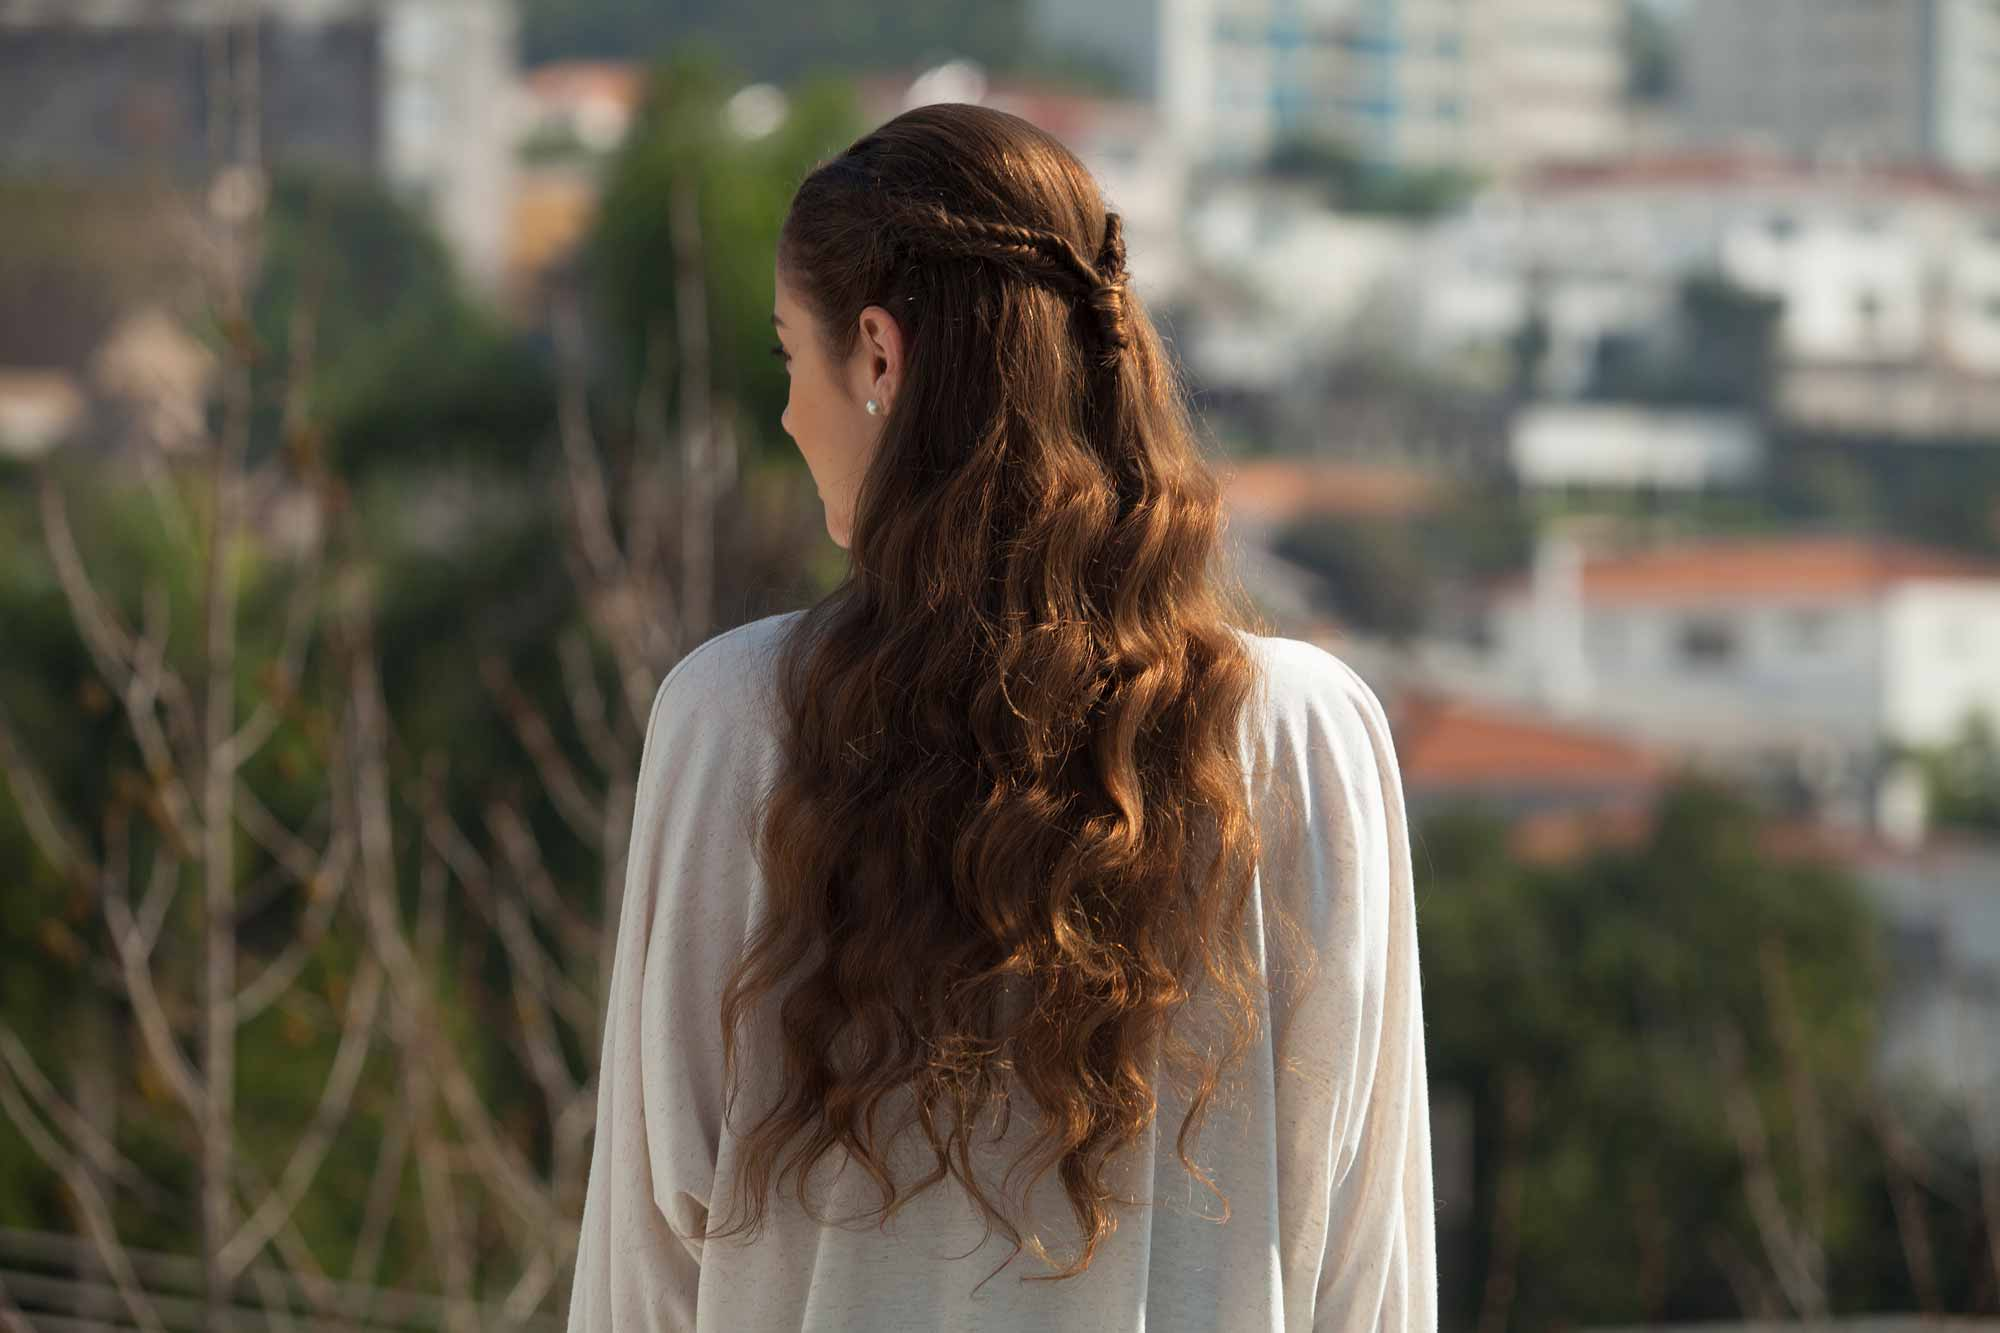 Fishtail braids: Woman with long brown hair in a fishtail braid half-up look